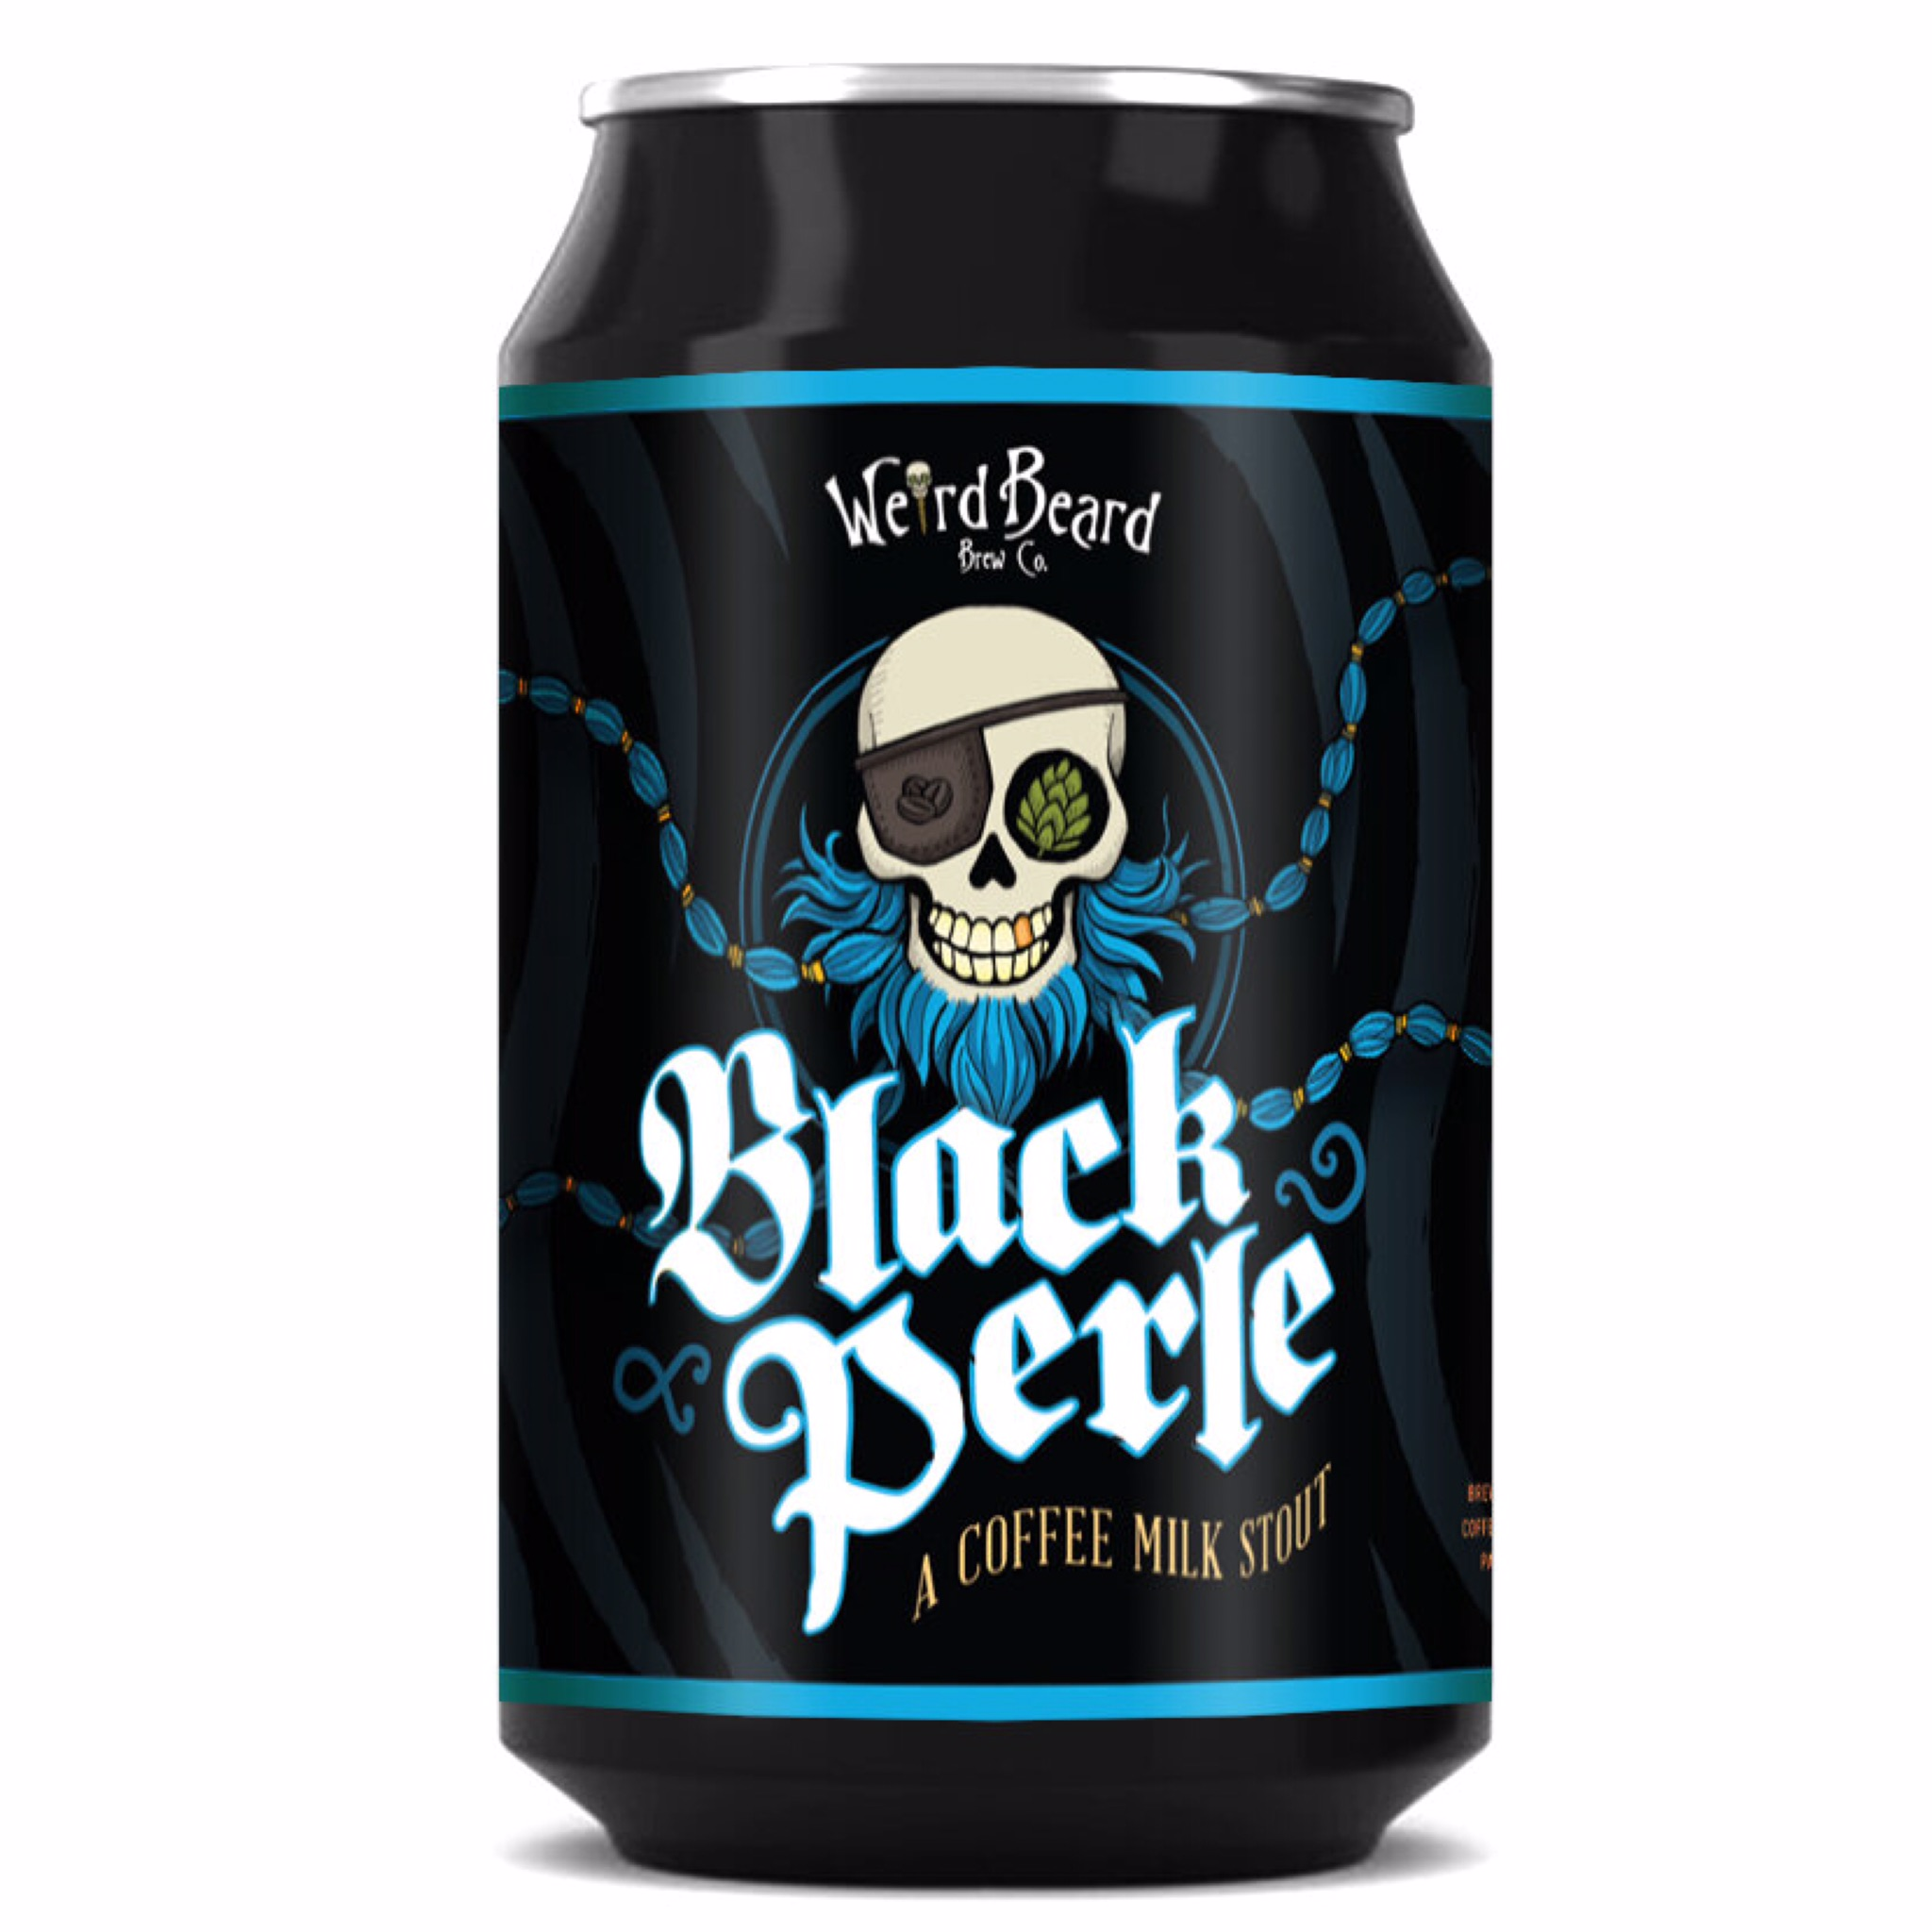 Black Perle Coffee Milk Stout 3.8% 330ml Weird Beard Brew Co